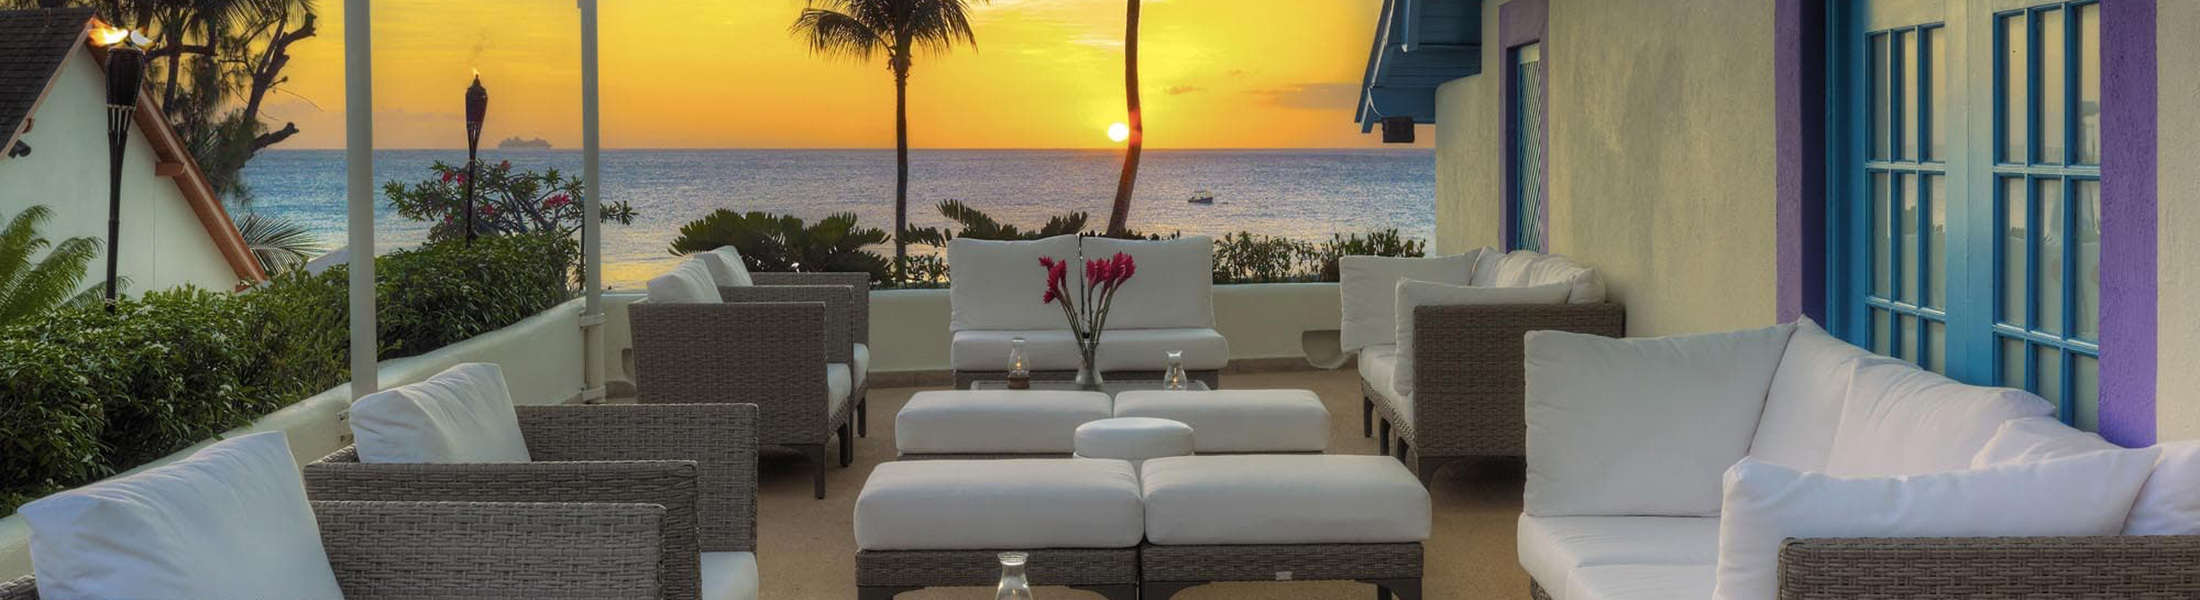 Outdoor dining restaurant at sunset at Crystal Cove by Elegant Hotels